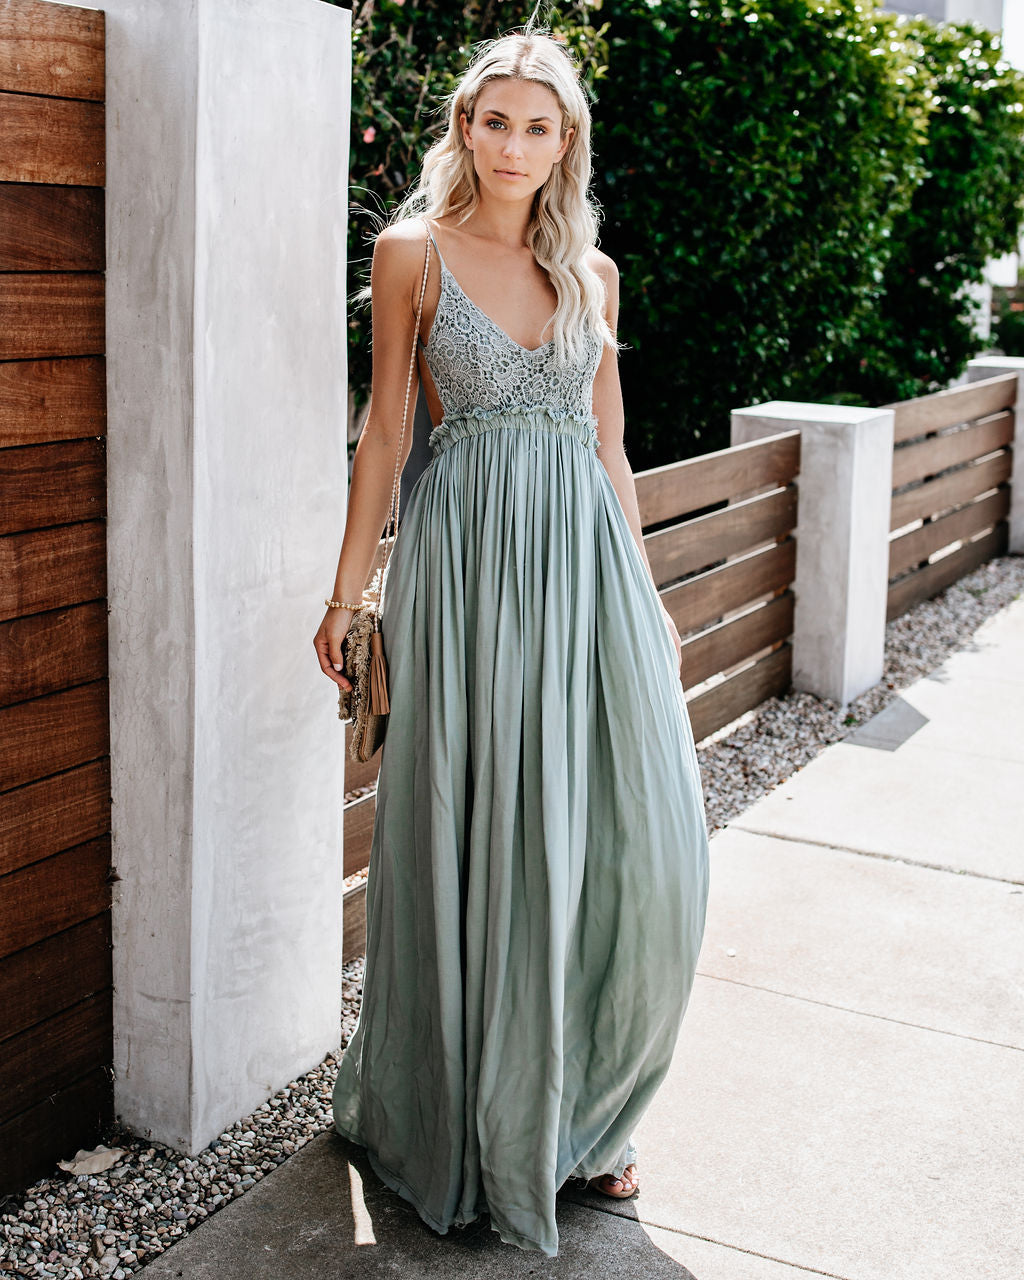 57b031e500c3 Detail Product. FILTER ← Home - BOHO - Milana Boho Maxi Dress - Dark Sage